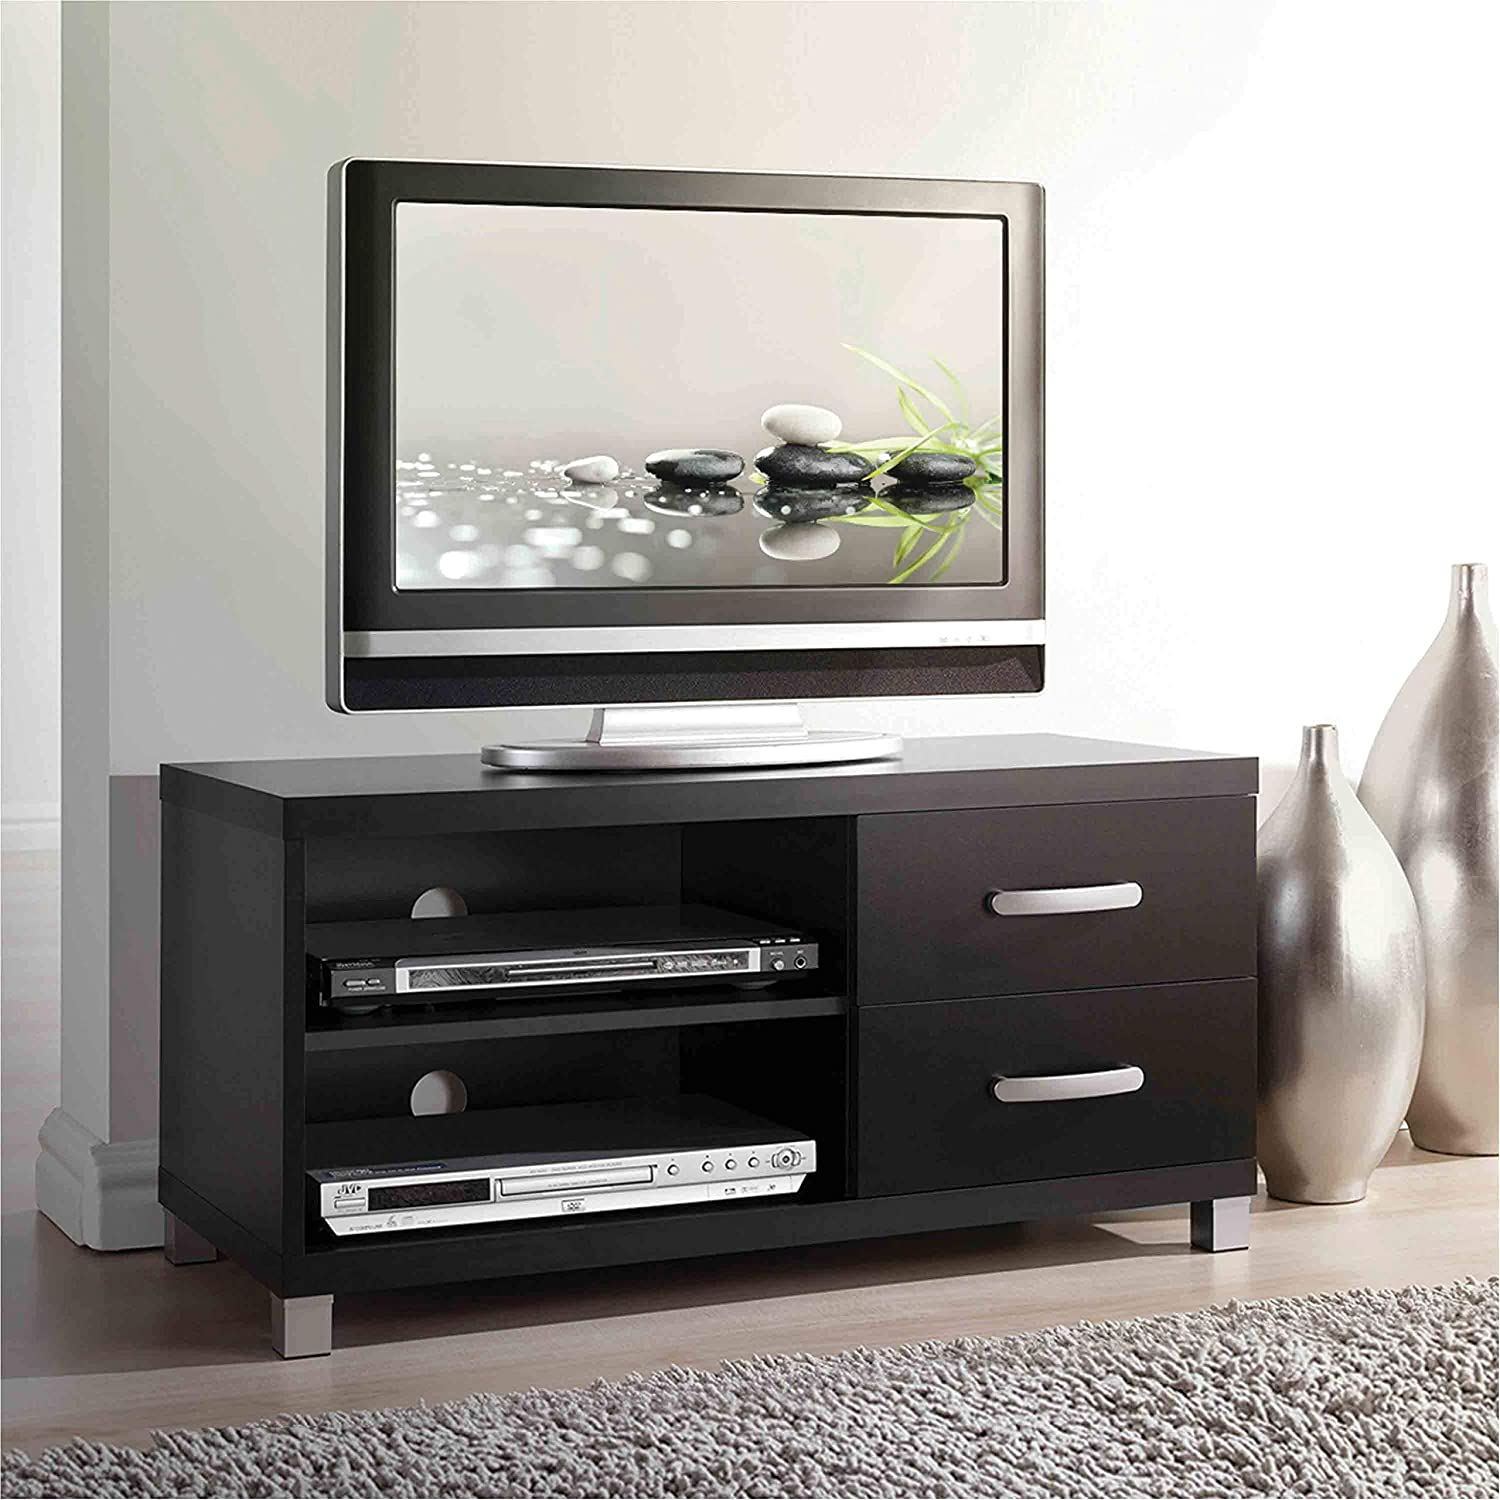 Techni Mobili Modern TV Stand with Over item handling ☆ Storage 40